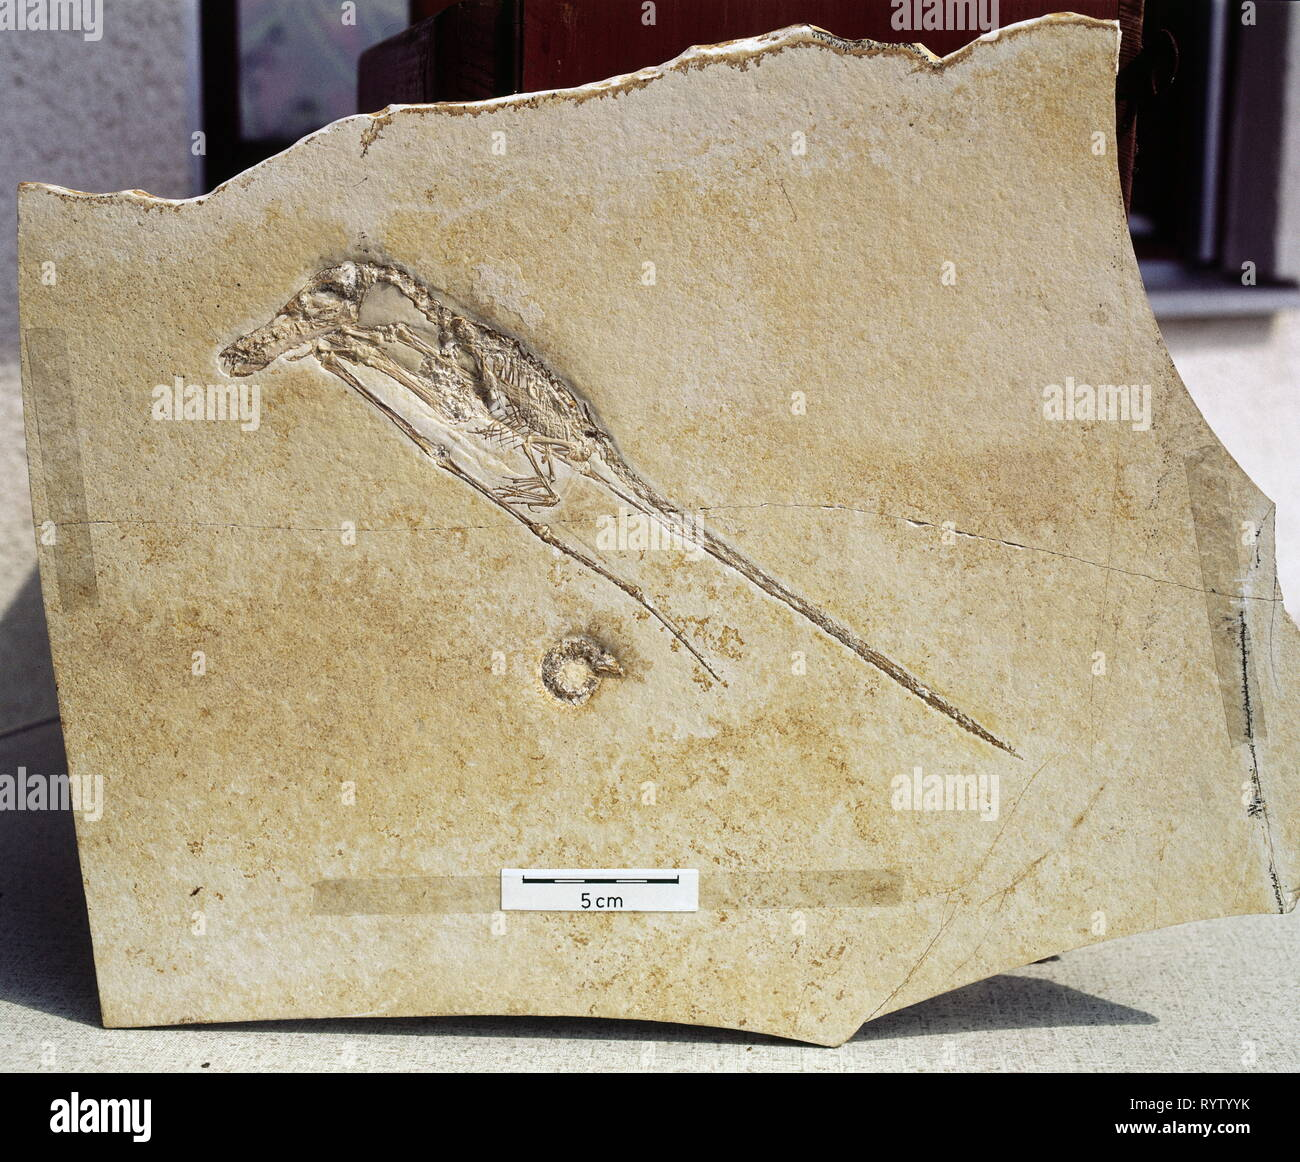 prehistory, fossilization, fossil, zoology, Rhamphorhynchus (Pterosaur), Upper Jurassic, Eichstaedt, Additional-Rights-Clearance-Info-Not-Available - Stock Image